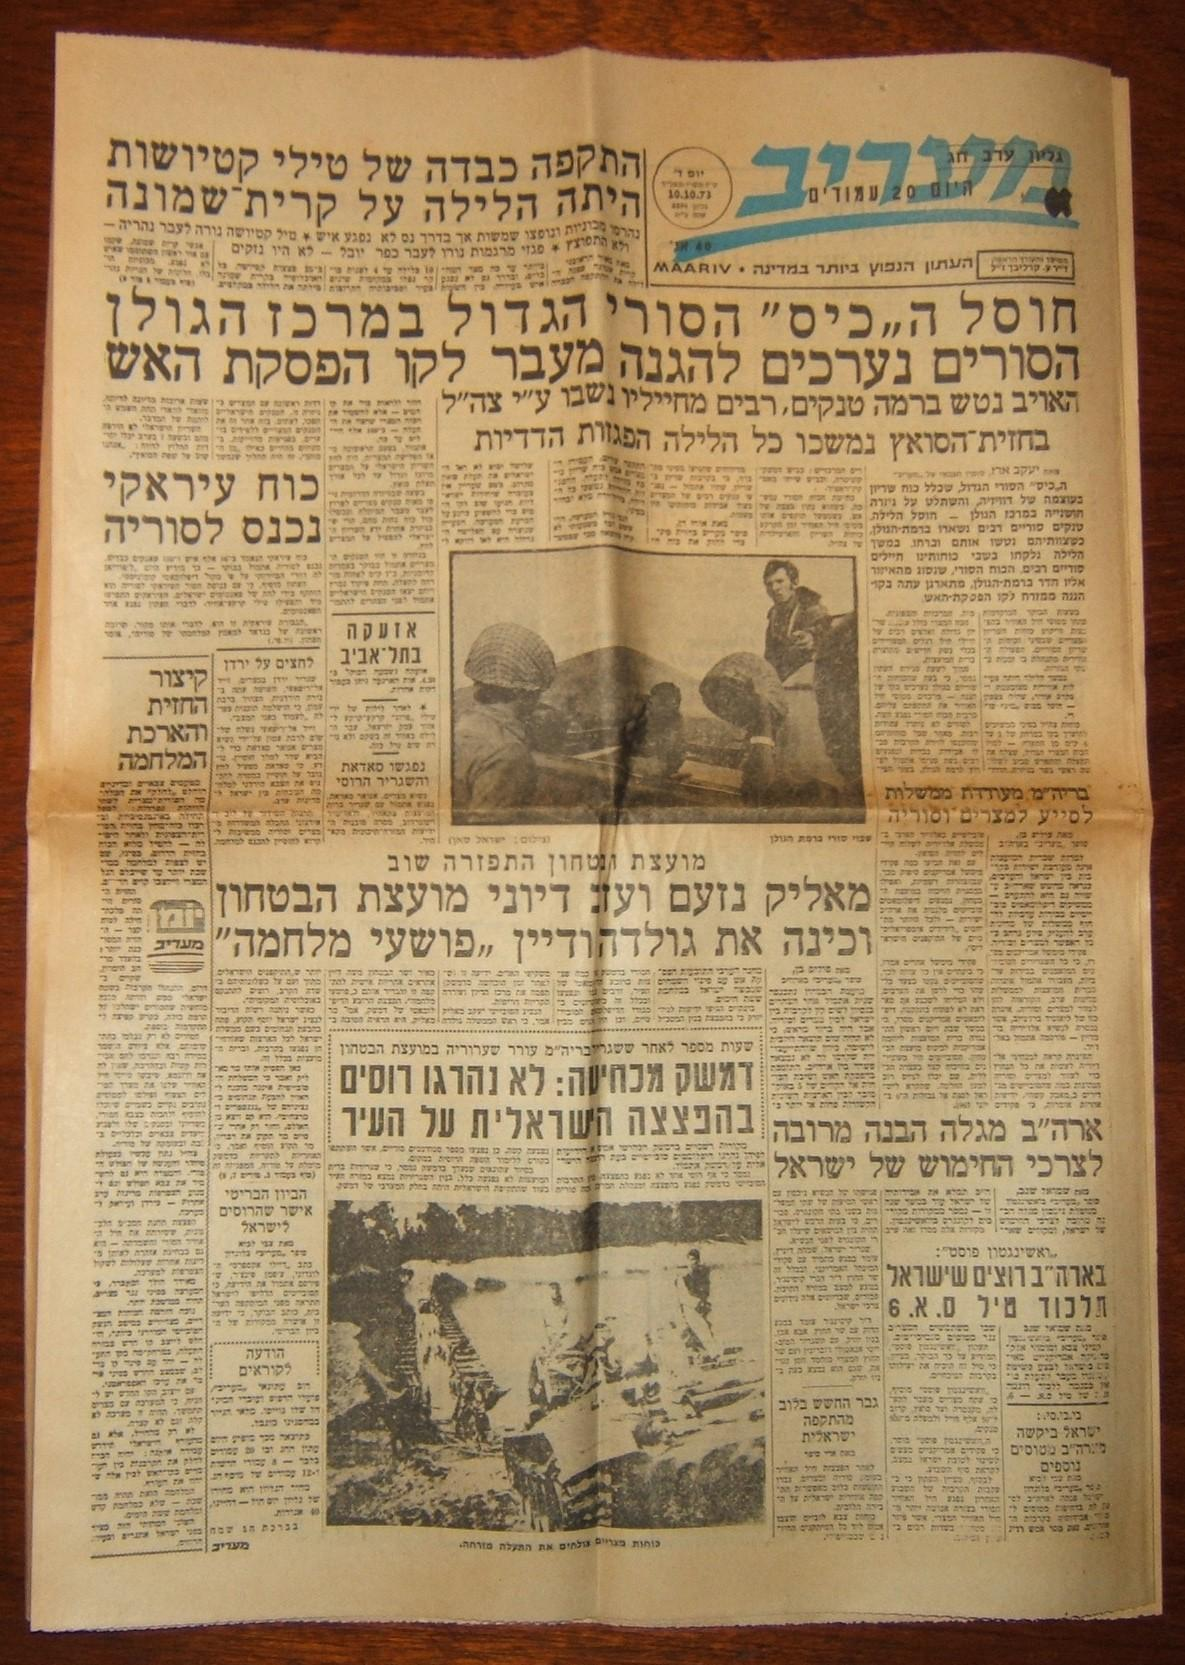 Yom Kippur War period 'Maariv' newspaper, 10 Oct. 1973